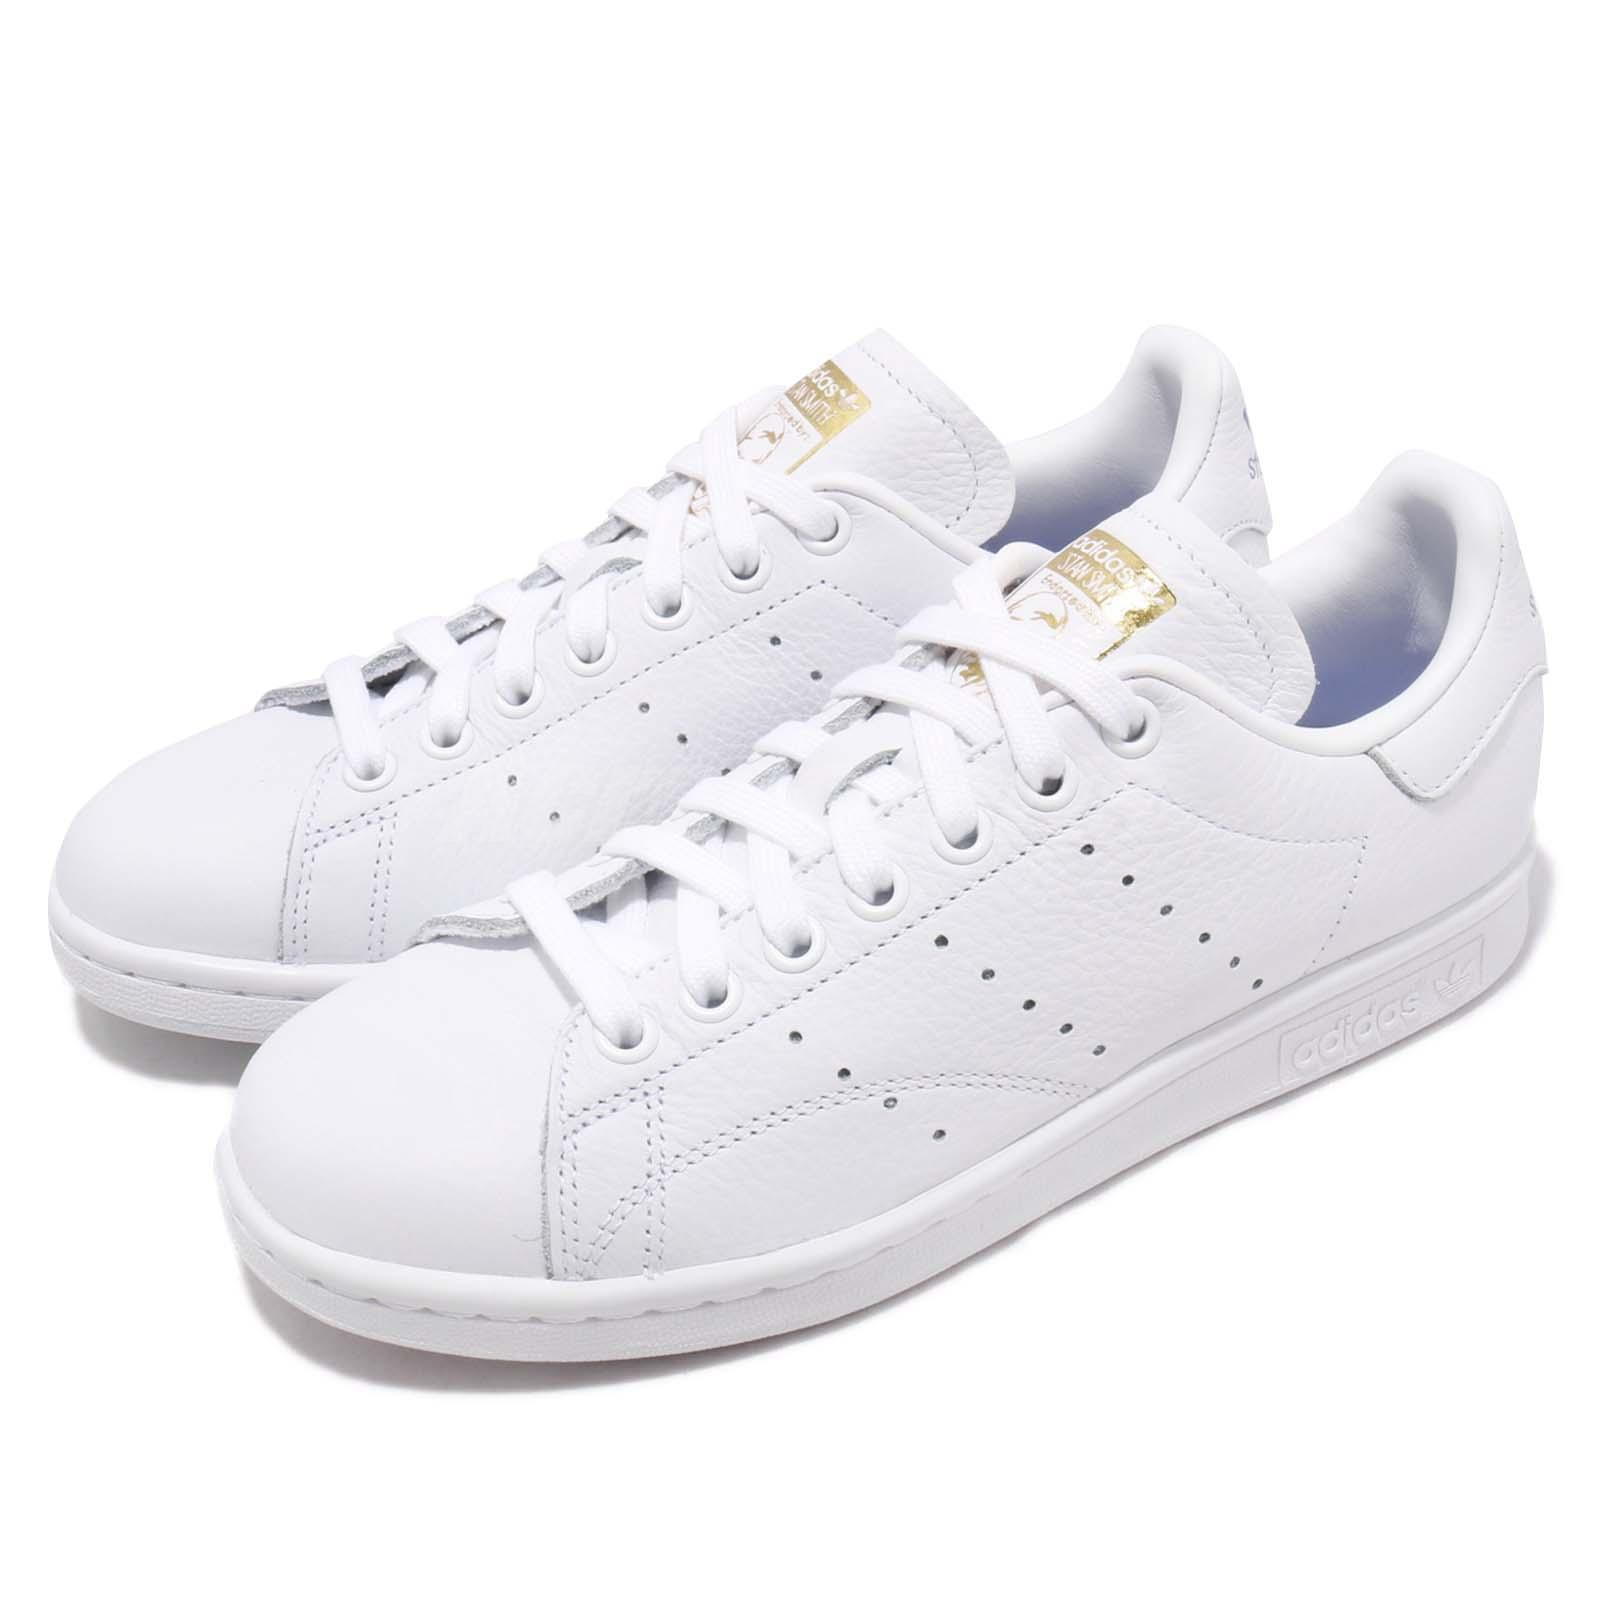 the latest dfa56 06a84 Details about adidas Originals Stan Smith W White Real Lilac Gold Women Casual  Shoes CG6014